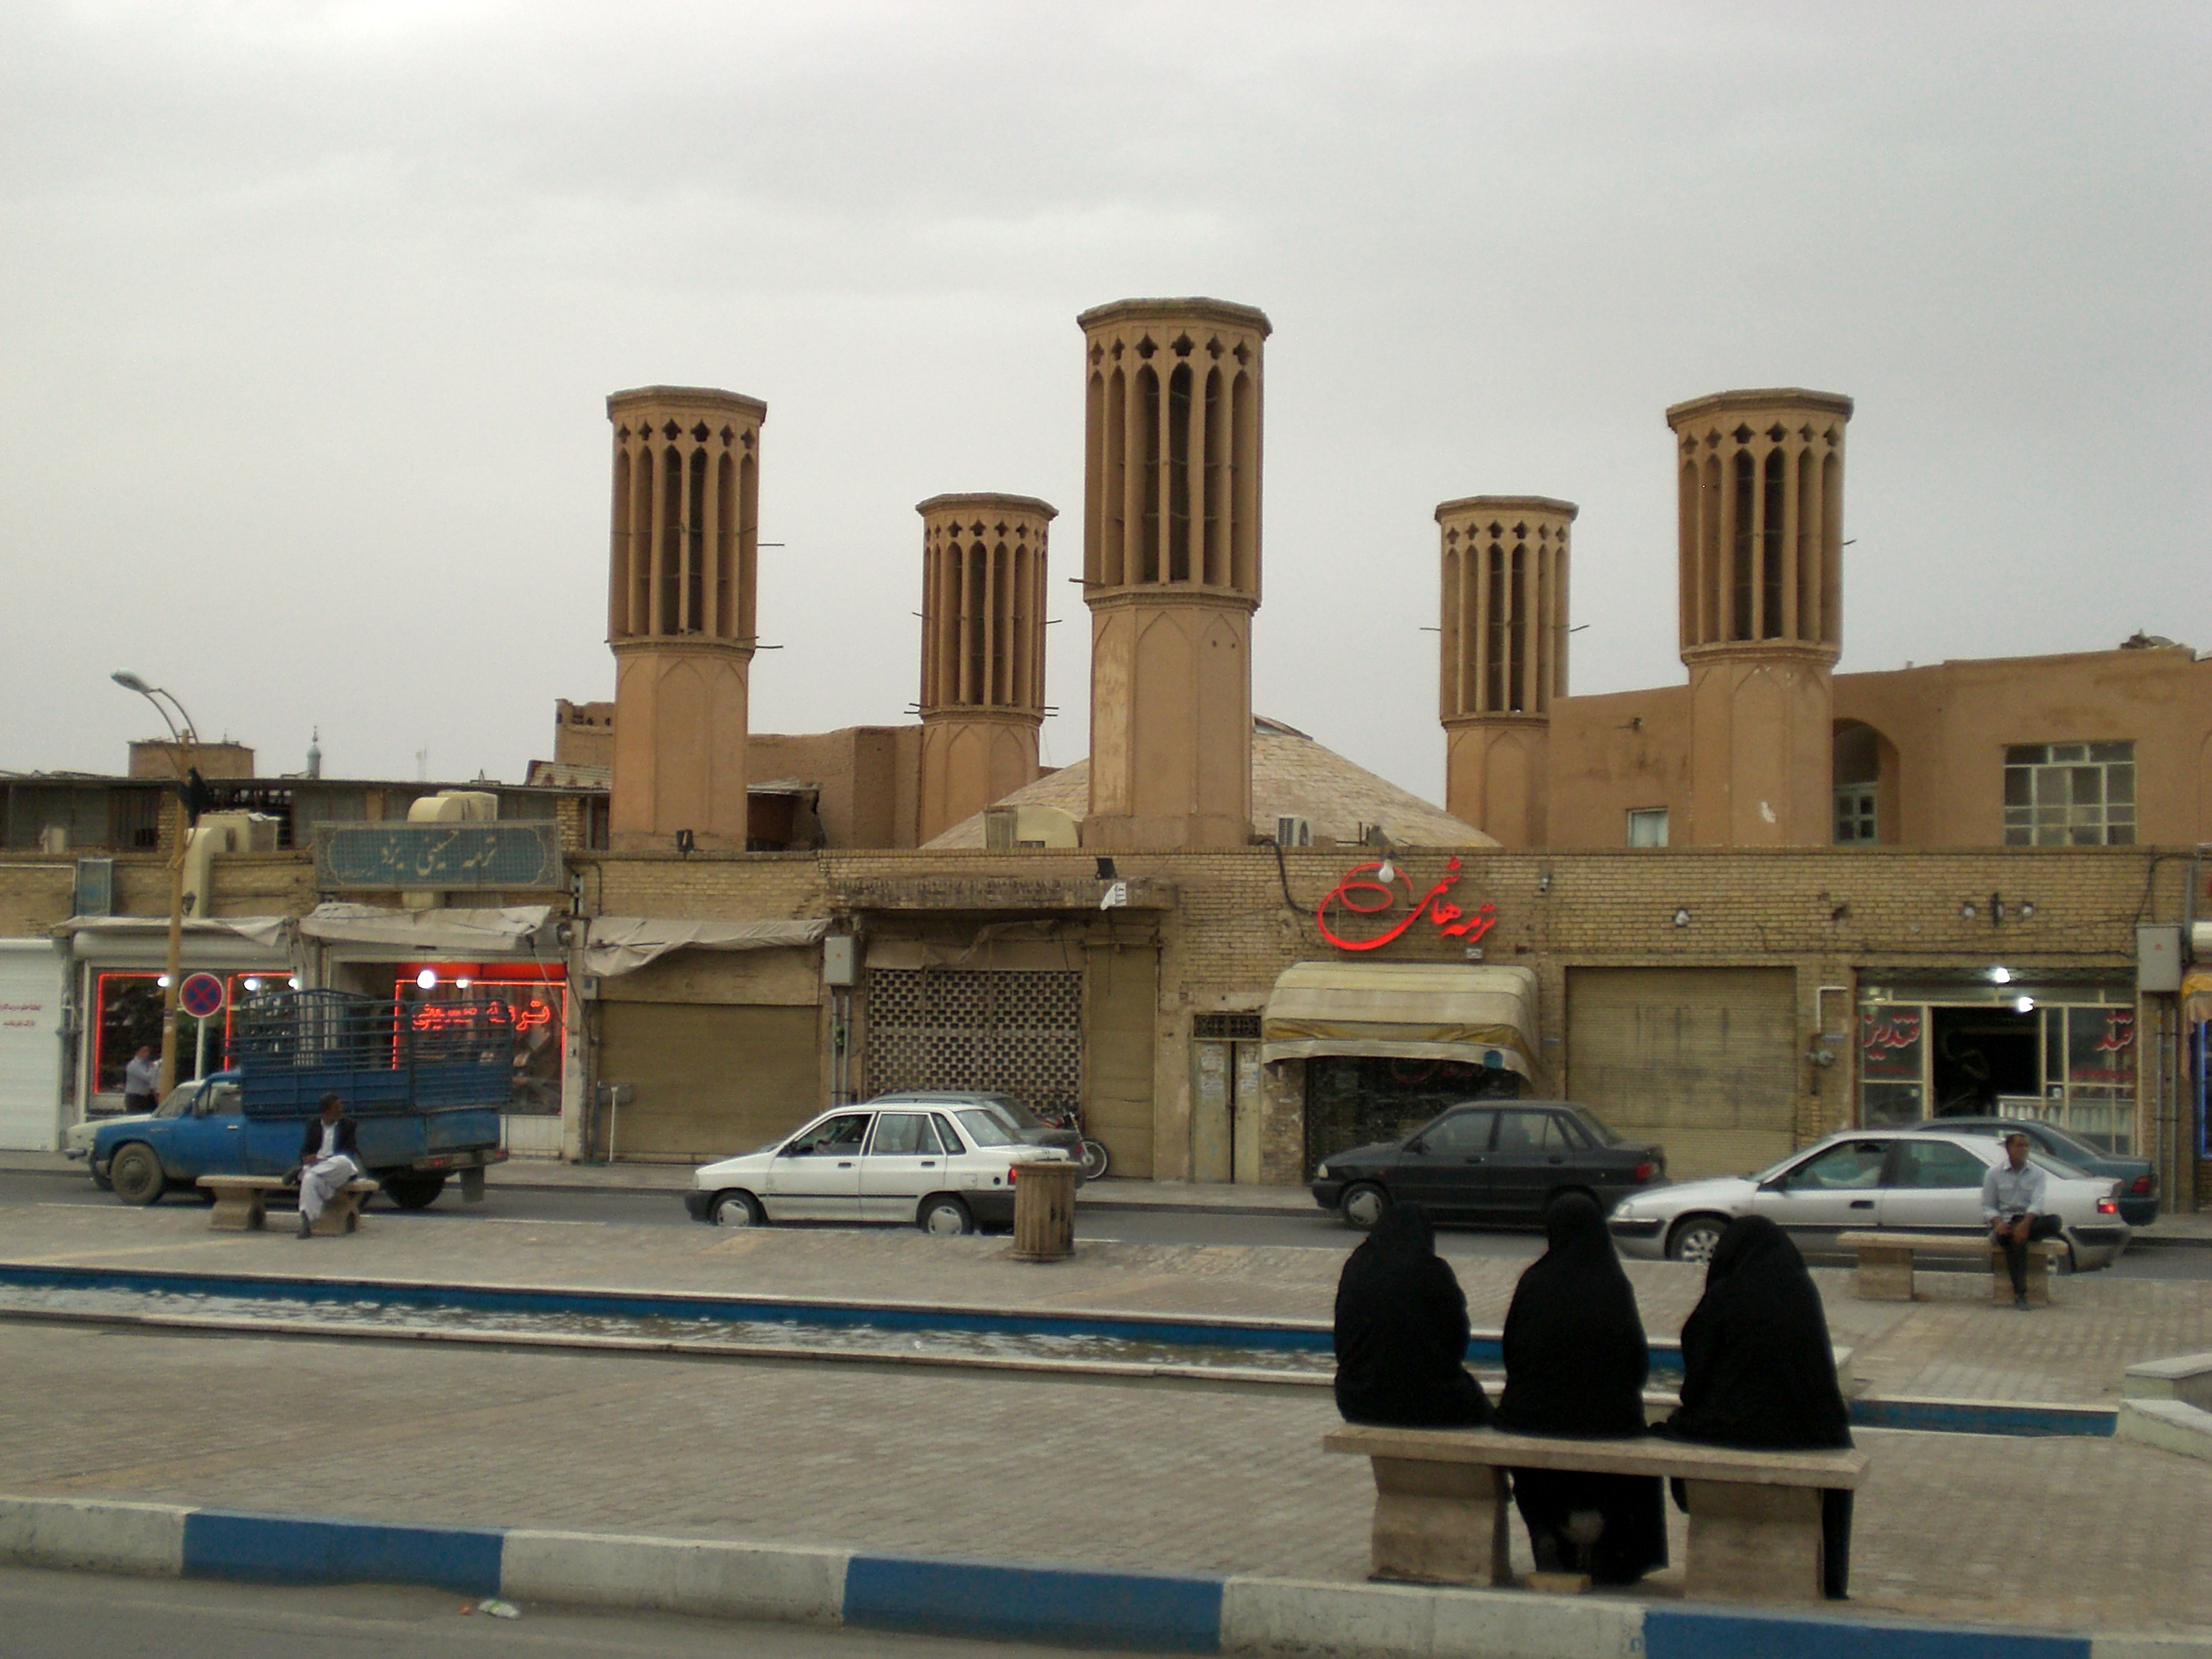 BADGIR YAZD